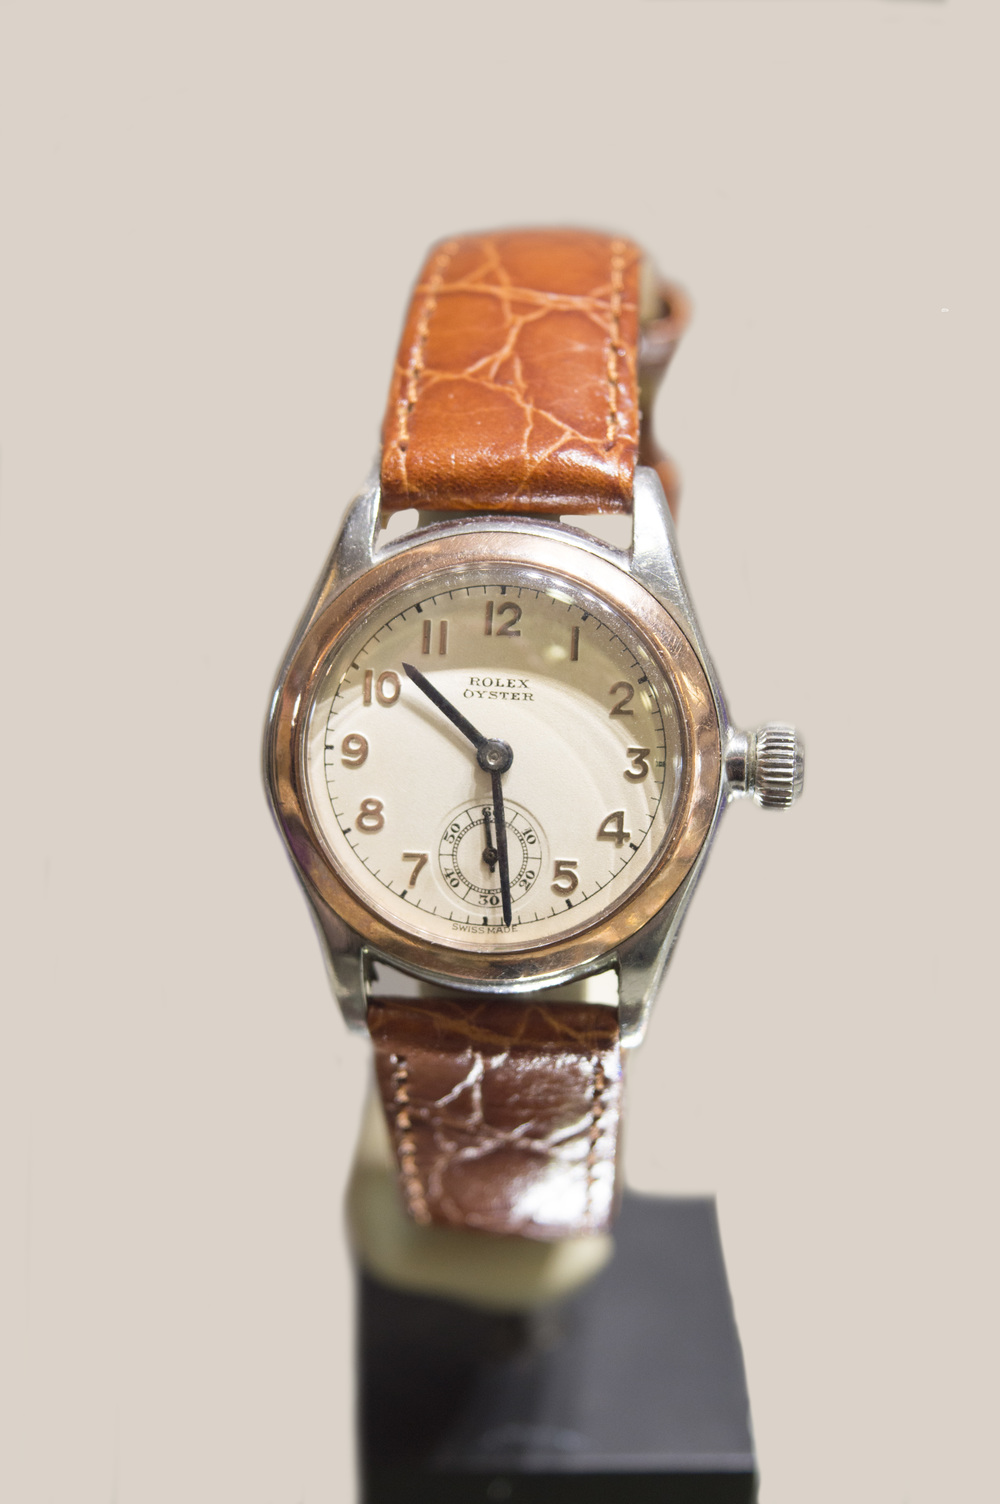 1932 Rolex Oyster